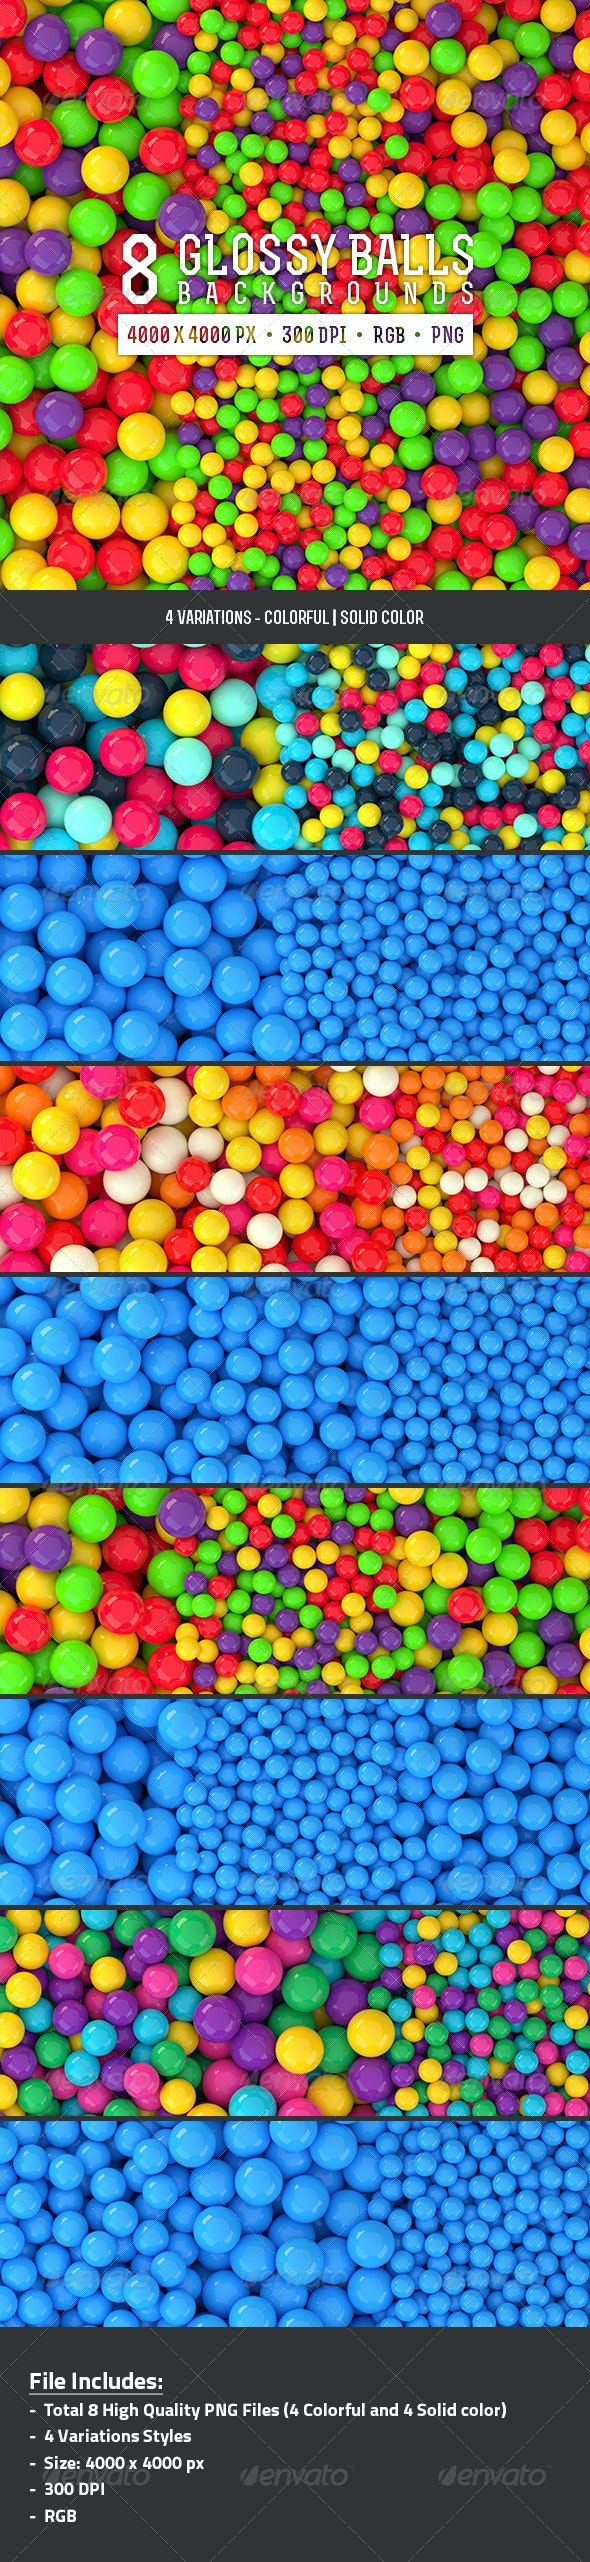 8 Glossy Balls Backgrounds Pack 2 - 3D Backgrounds